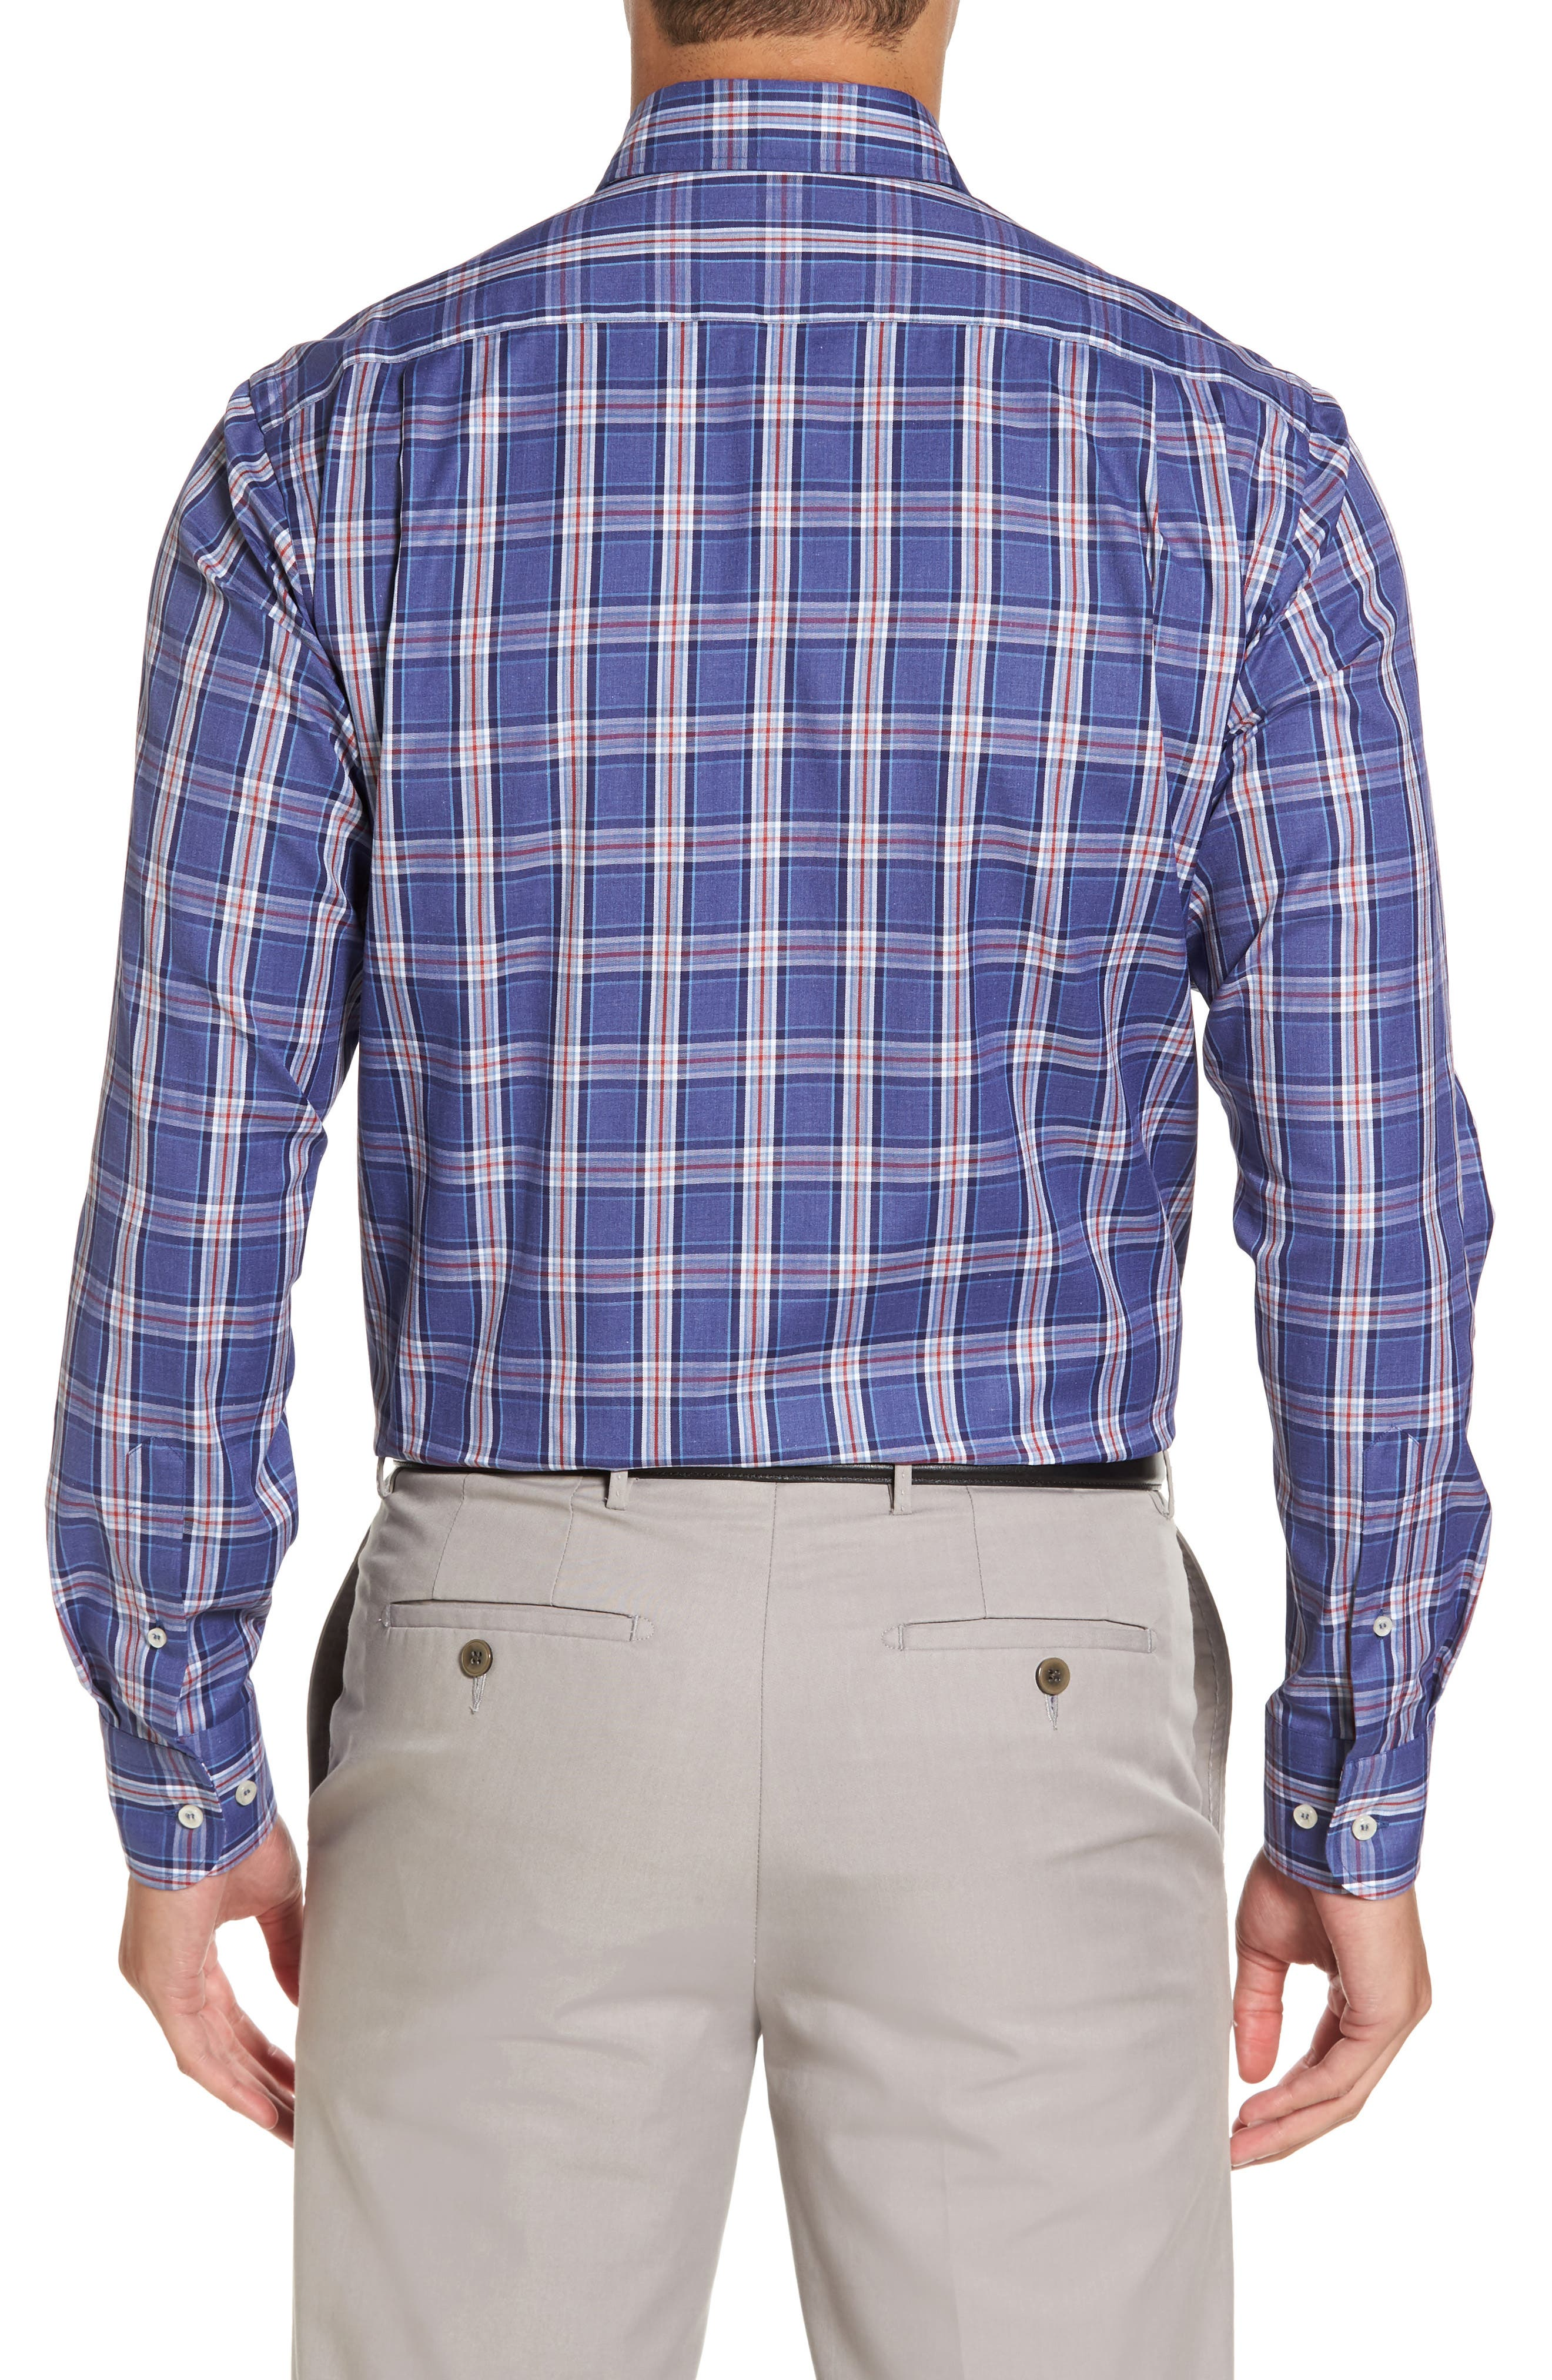 Paul&Shark Plaid Sport Shirt,                             Alternate thumbnail 2, color,                             400